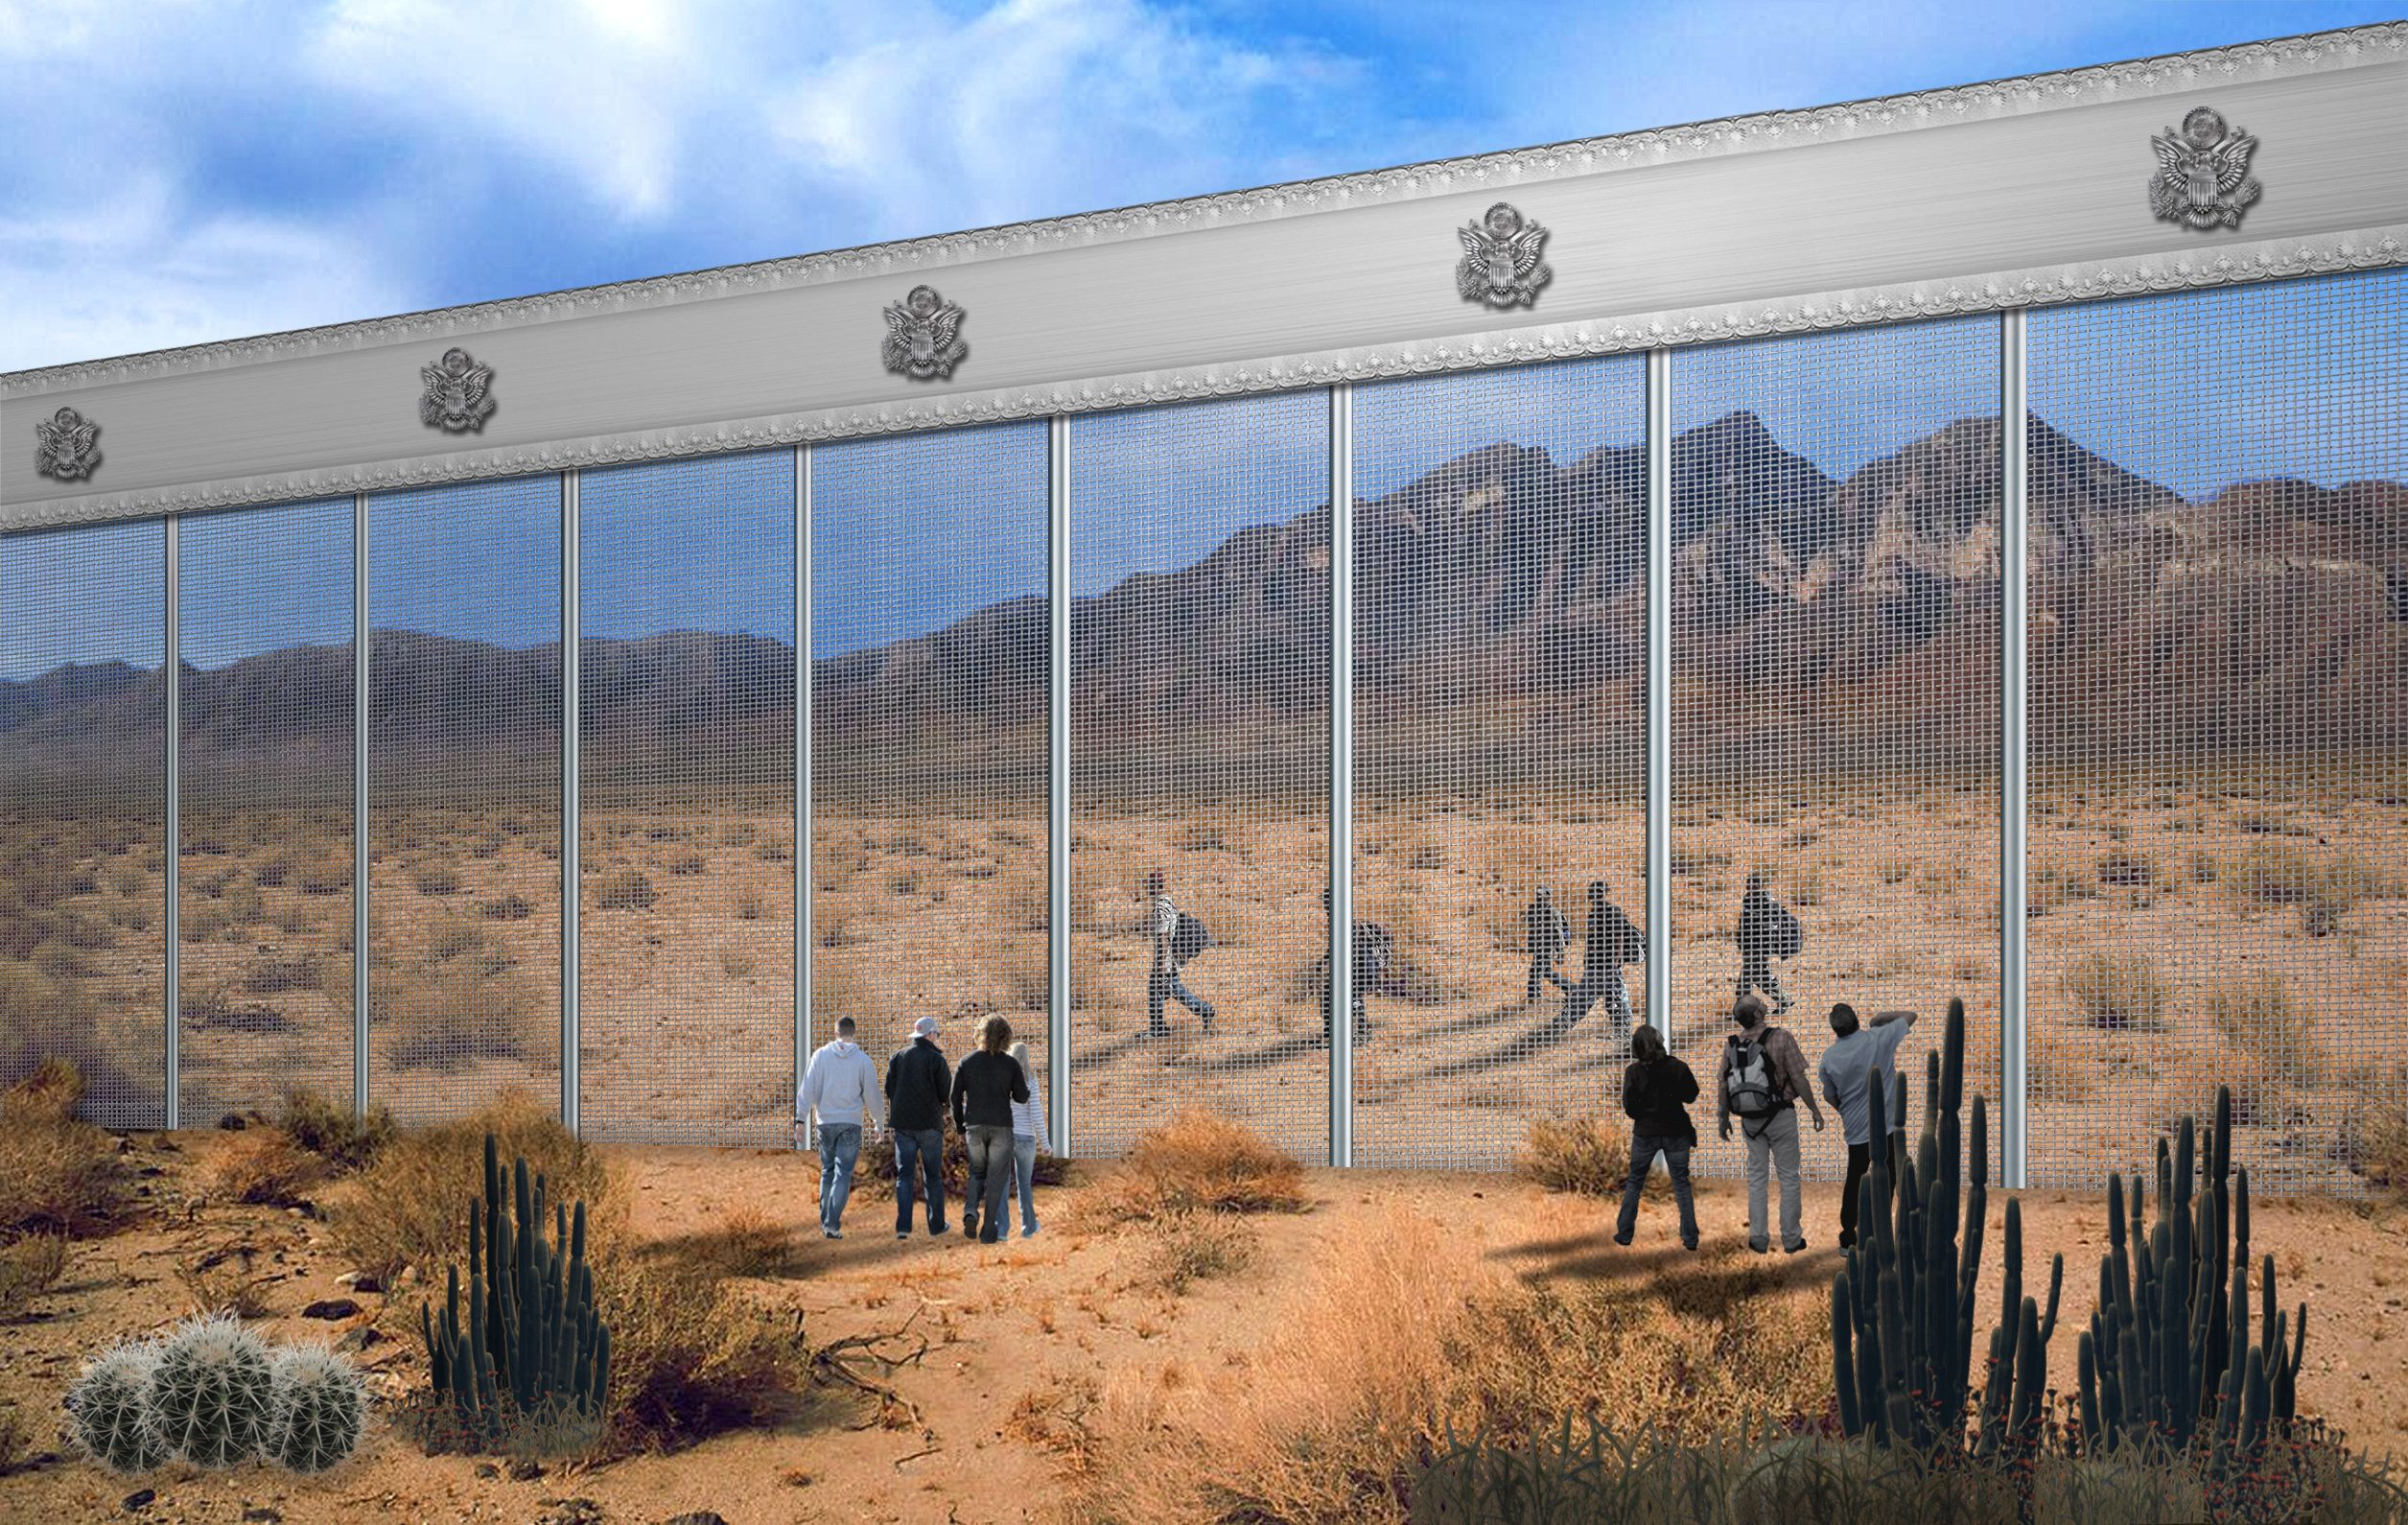 The Unlikely Design Proposal For Trump's Border Wall From